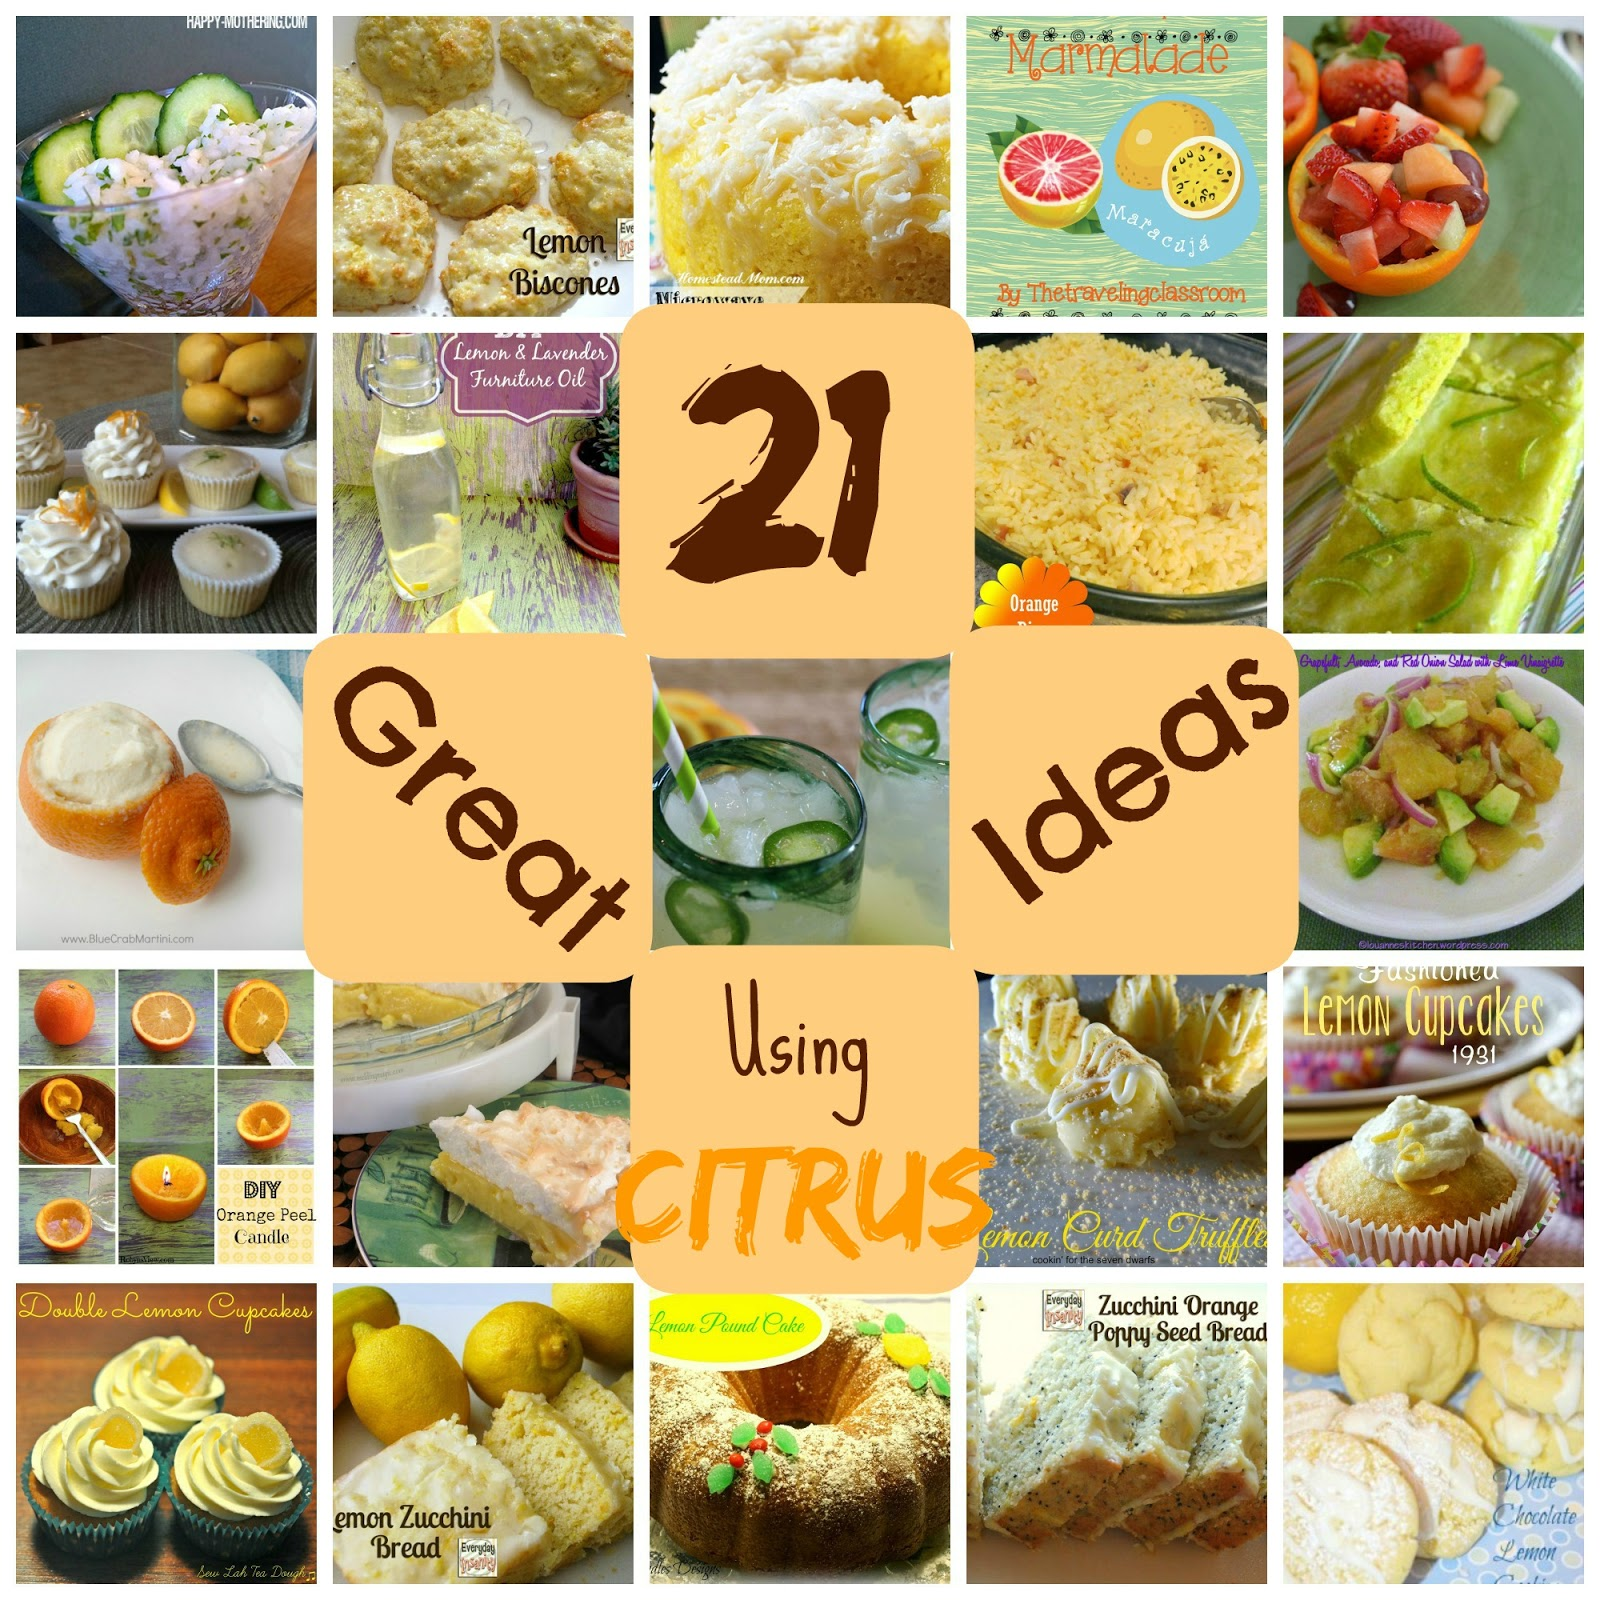 21 Great Ideas Using Citrus a roundup